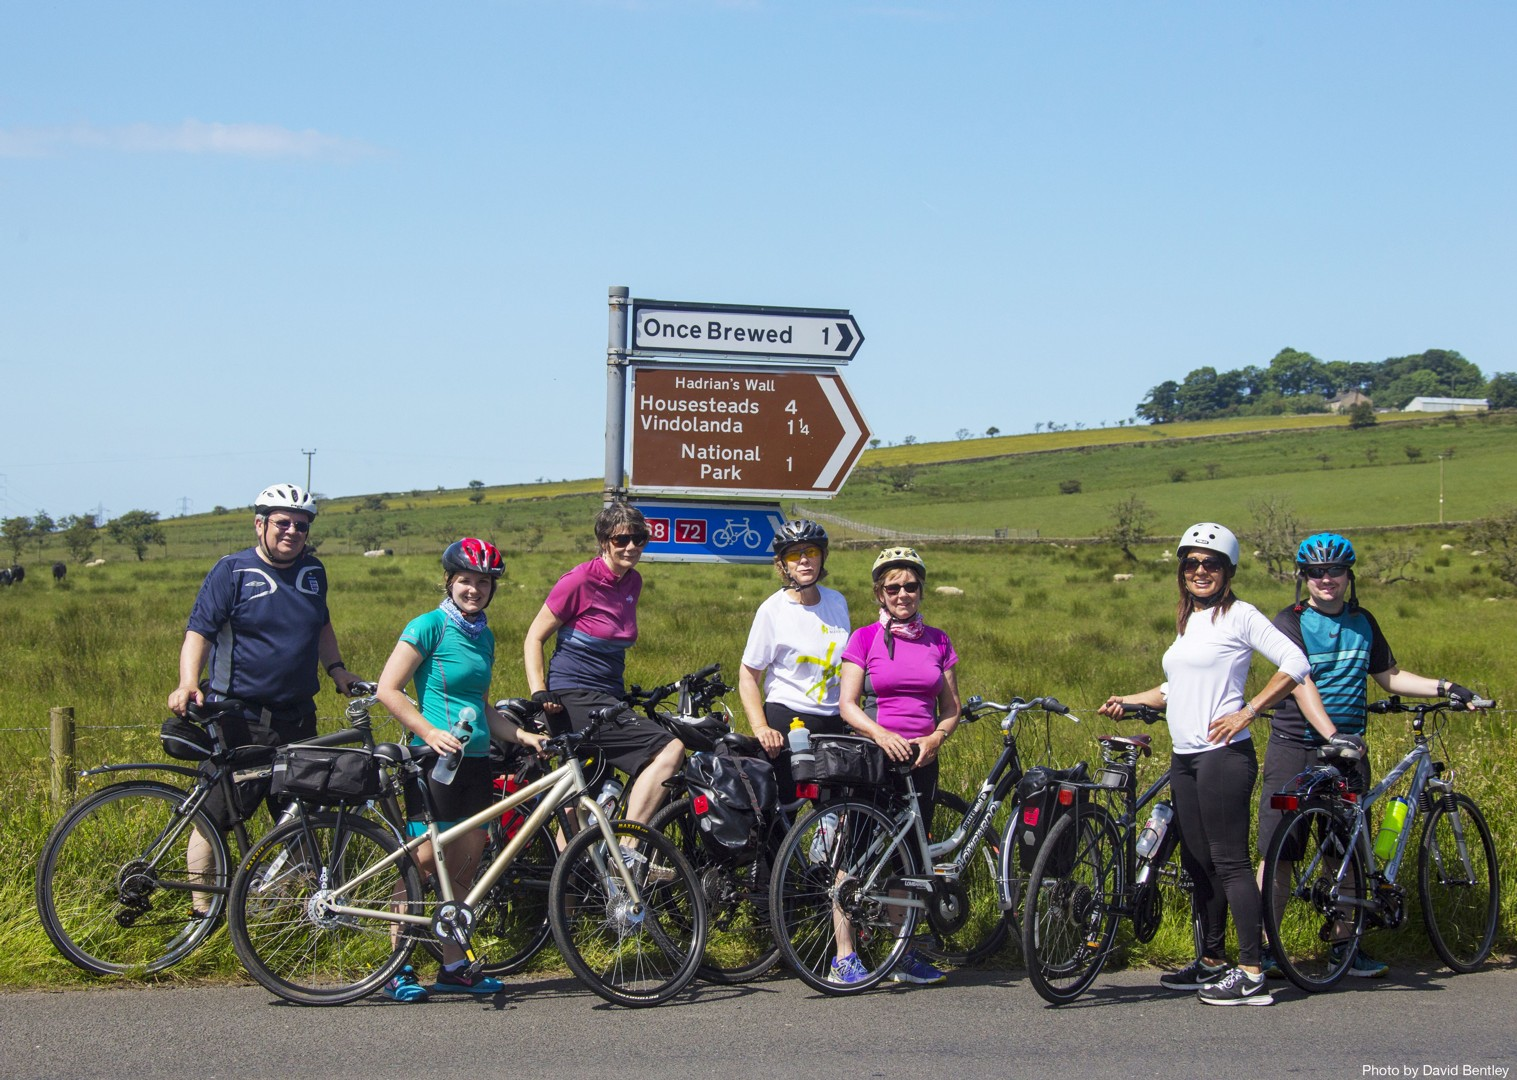 National-Cycle-Network-Hadrians-Cycleway-Supported-Leisure-Cycling-Holiday.jpg - UK - Hadrian's Cycleway - Supported Leisure Cycling Holiday - Leisure Cycling